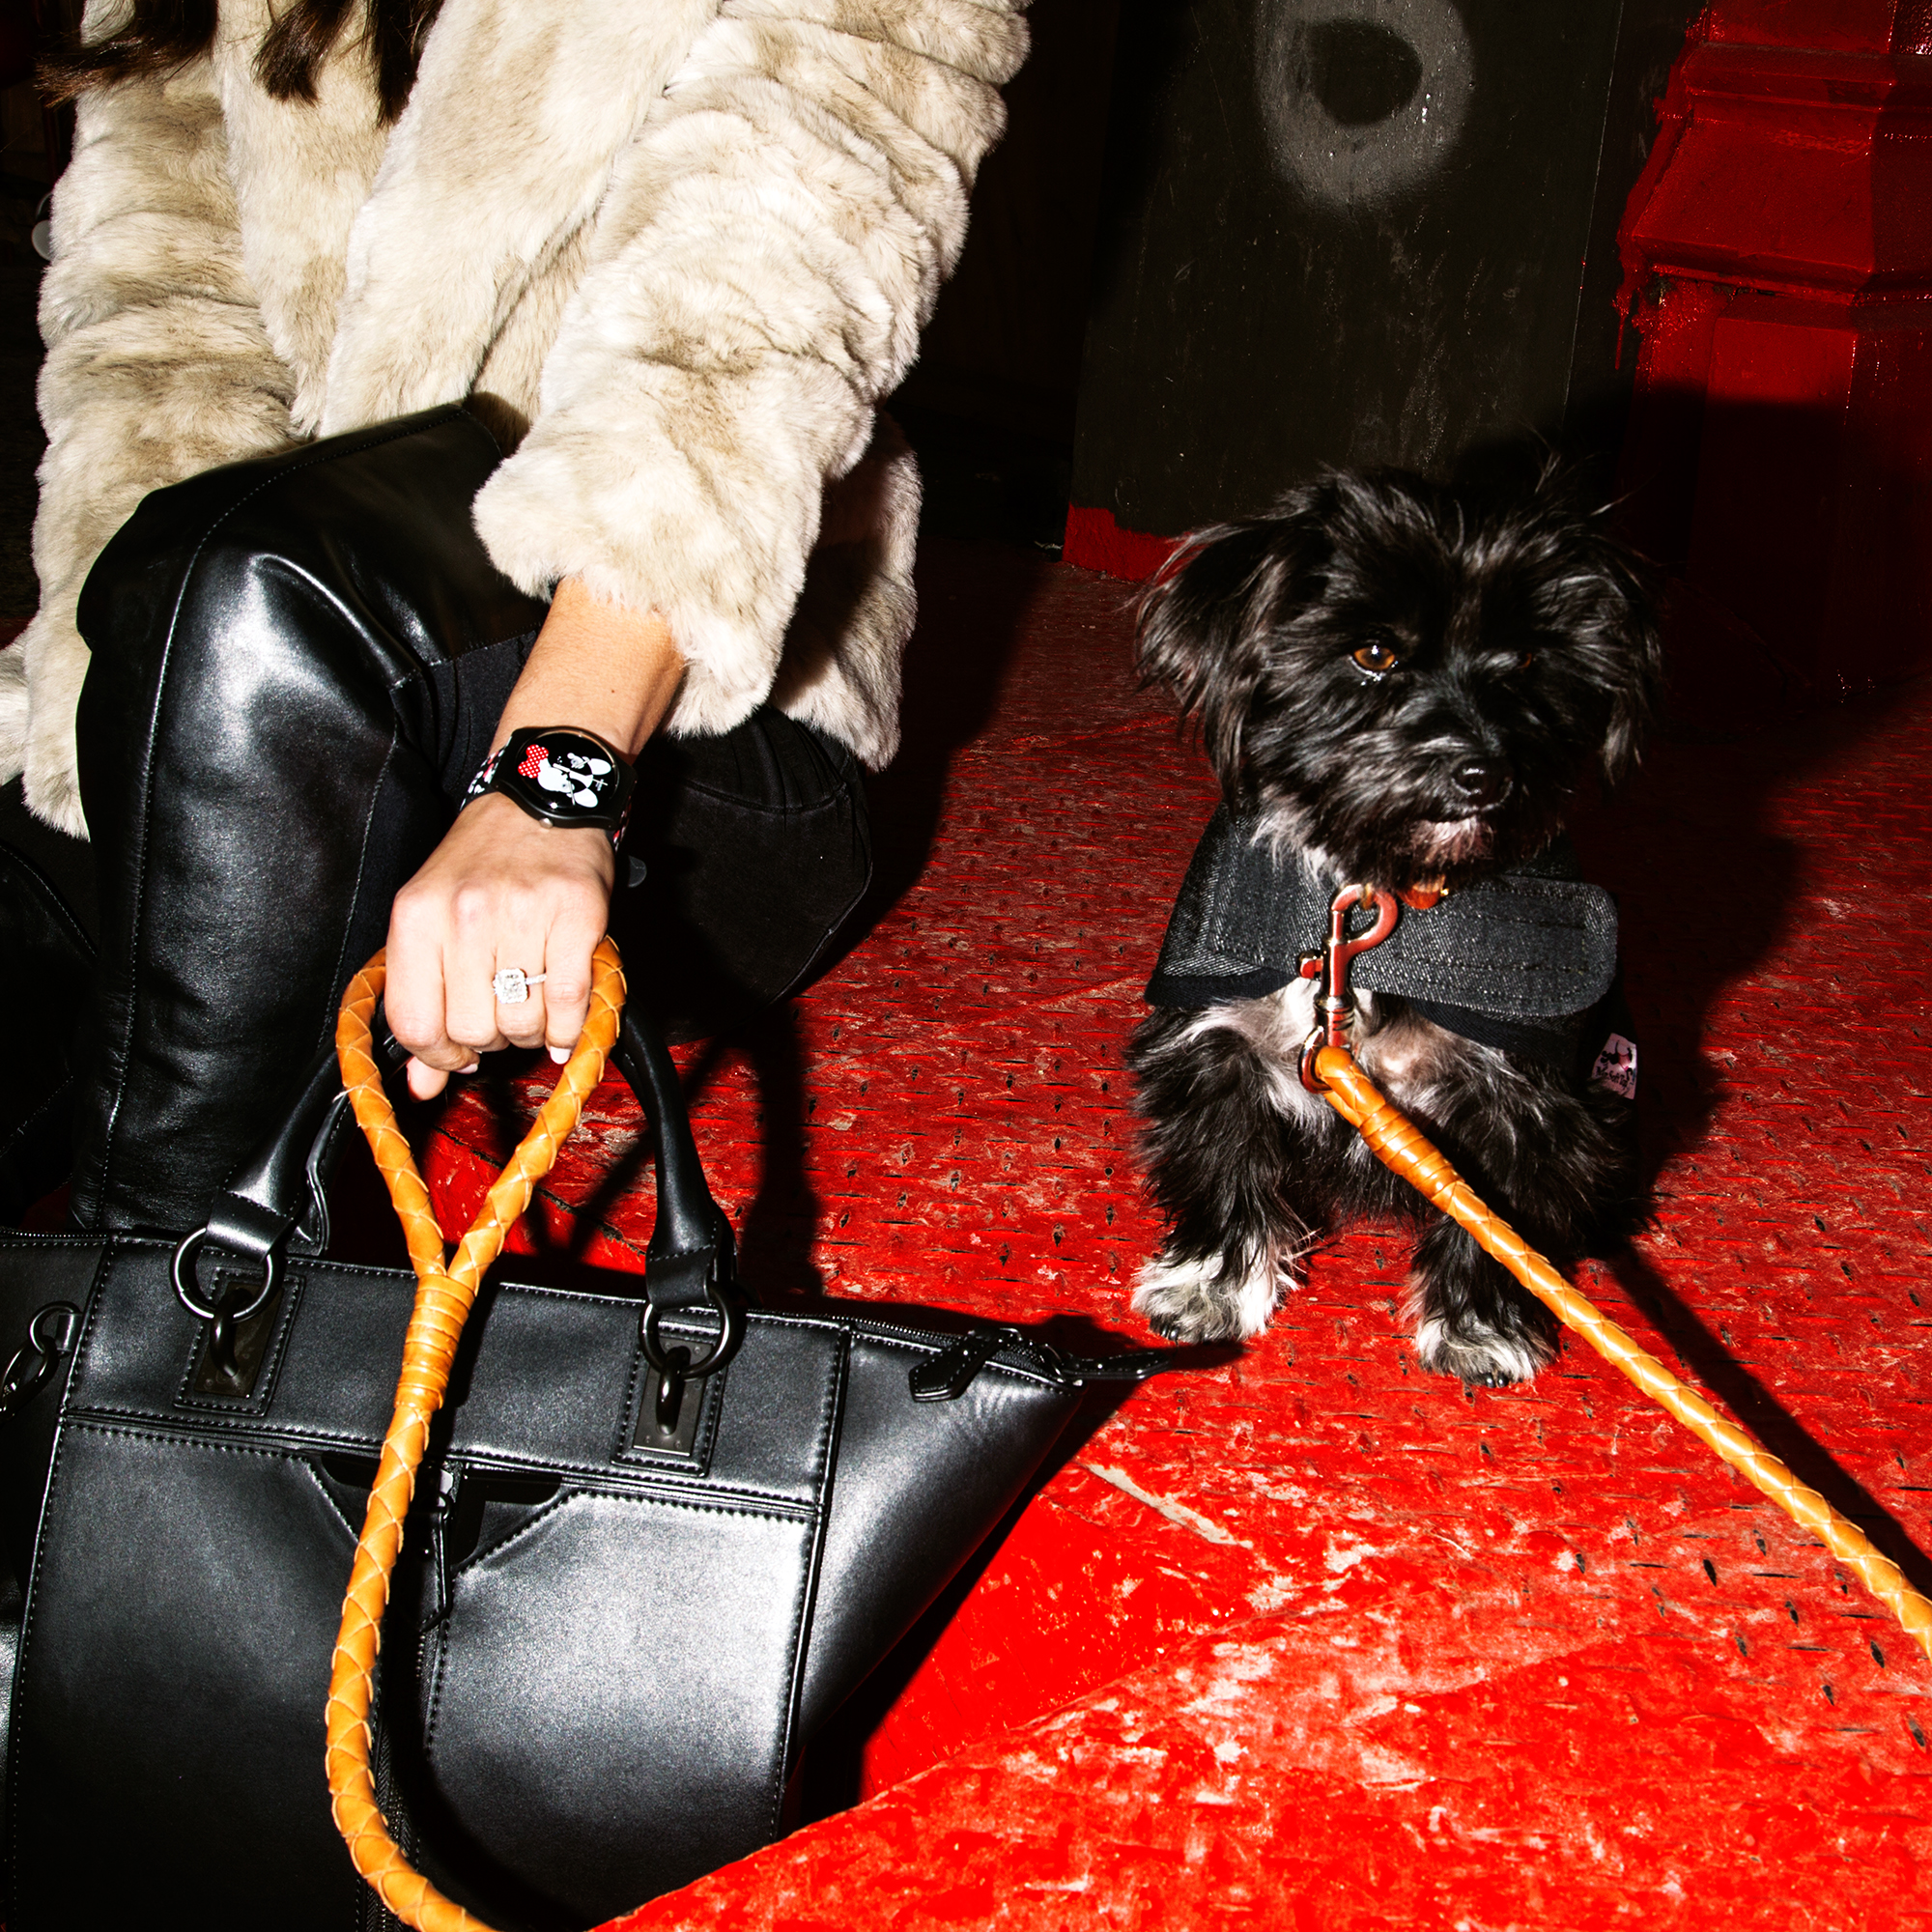 Leash,   Bottega Veneta  . Coat on Edie,   Mr. Soft Top  . Watch,   My Pet and Me Swatch